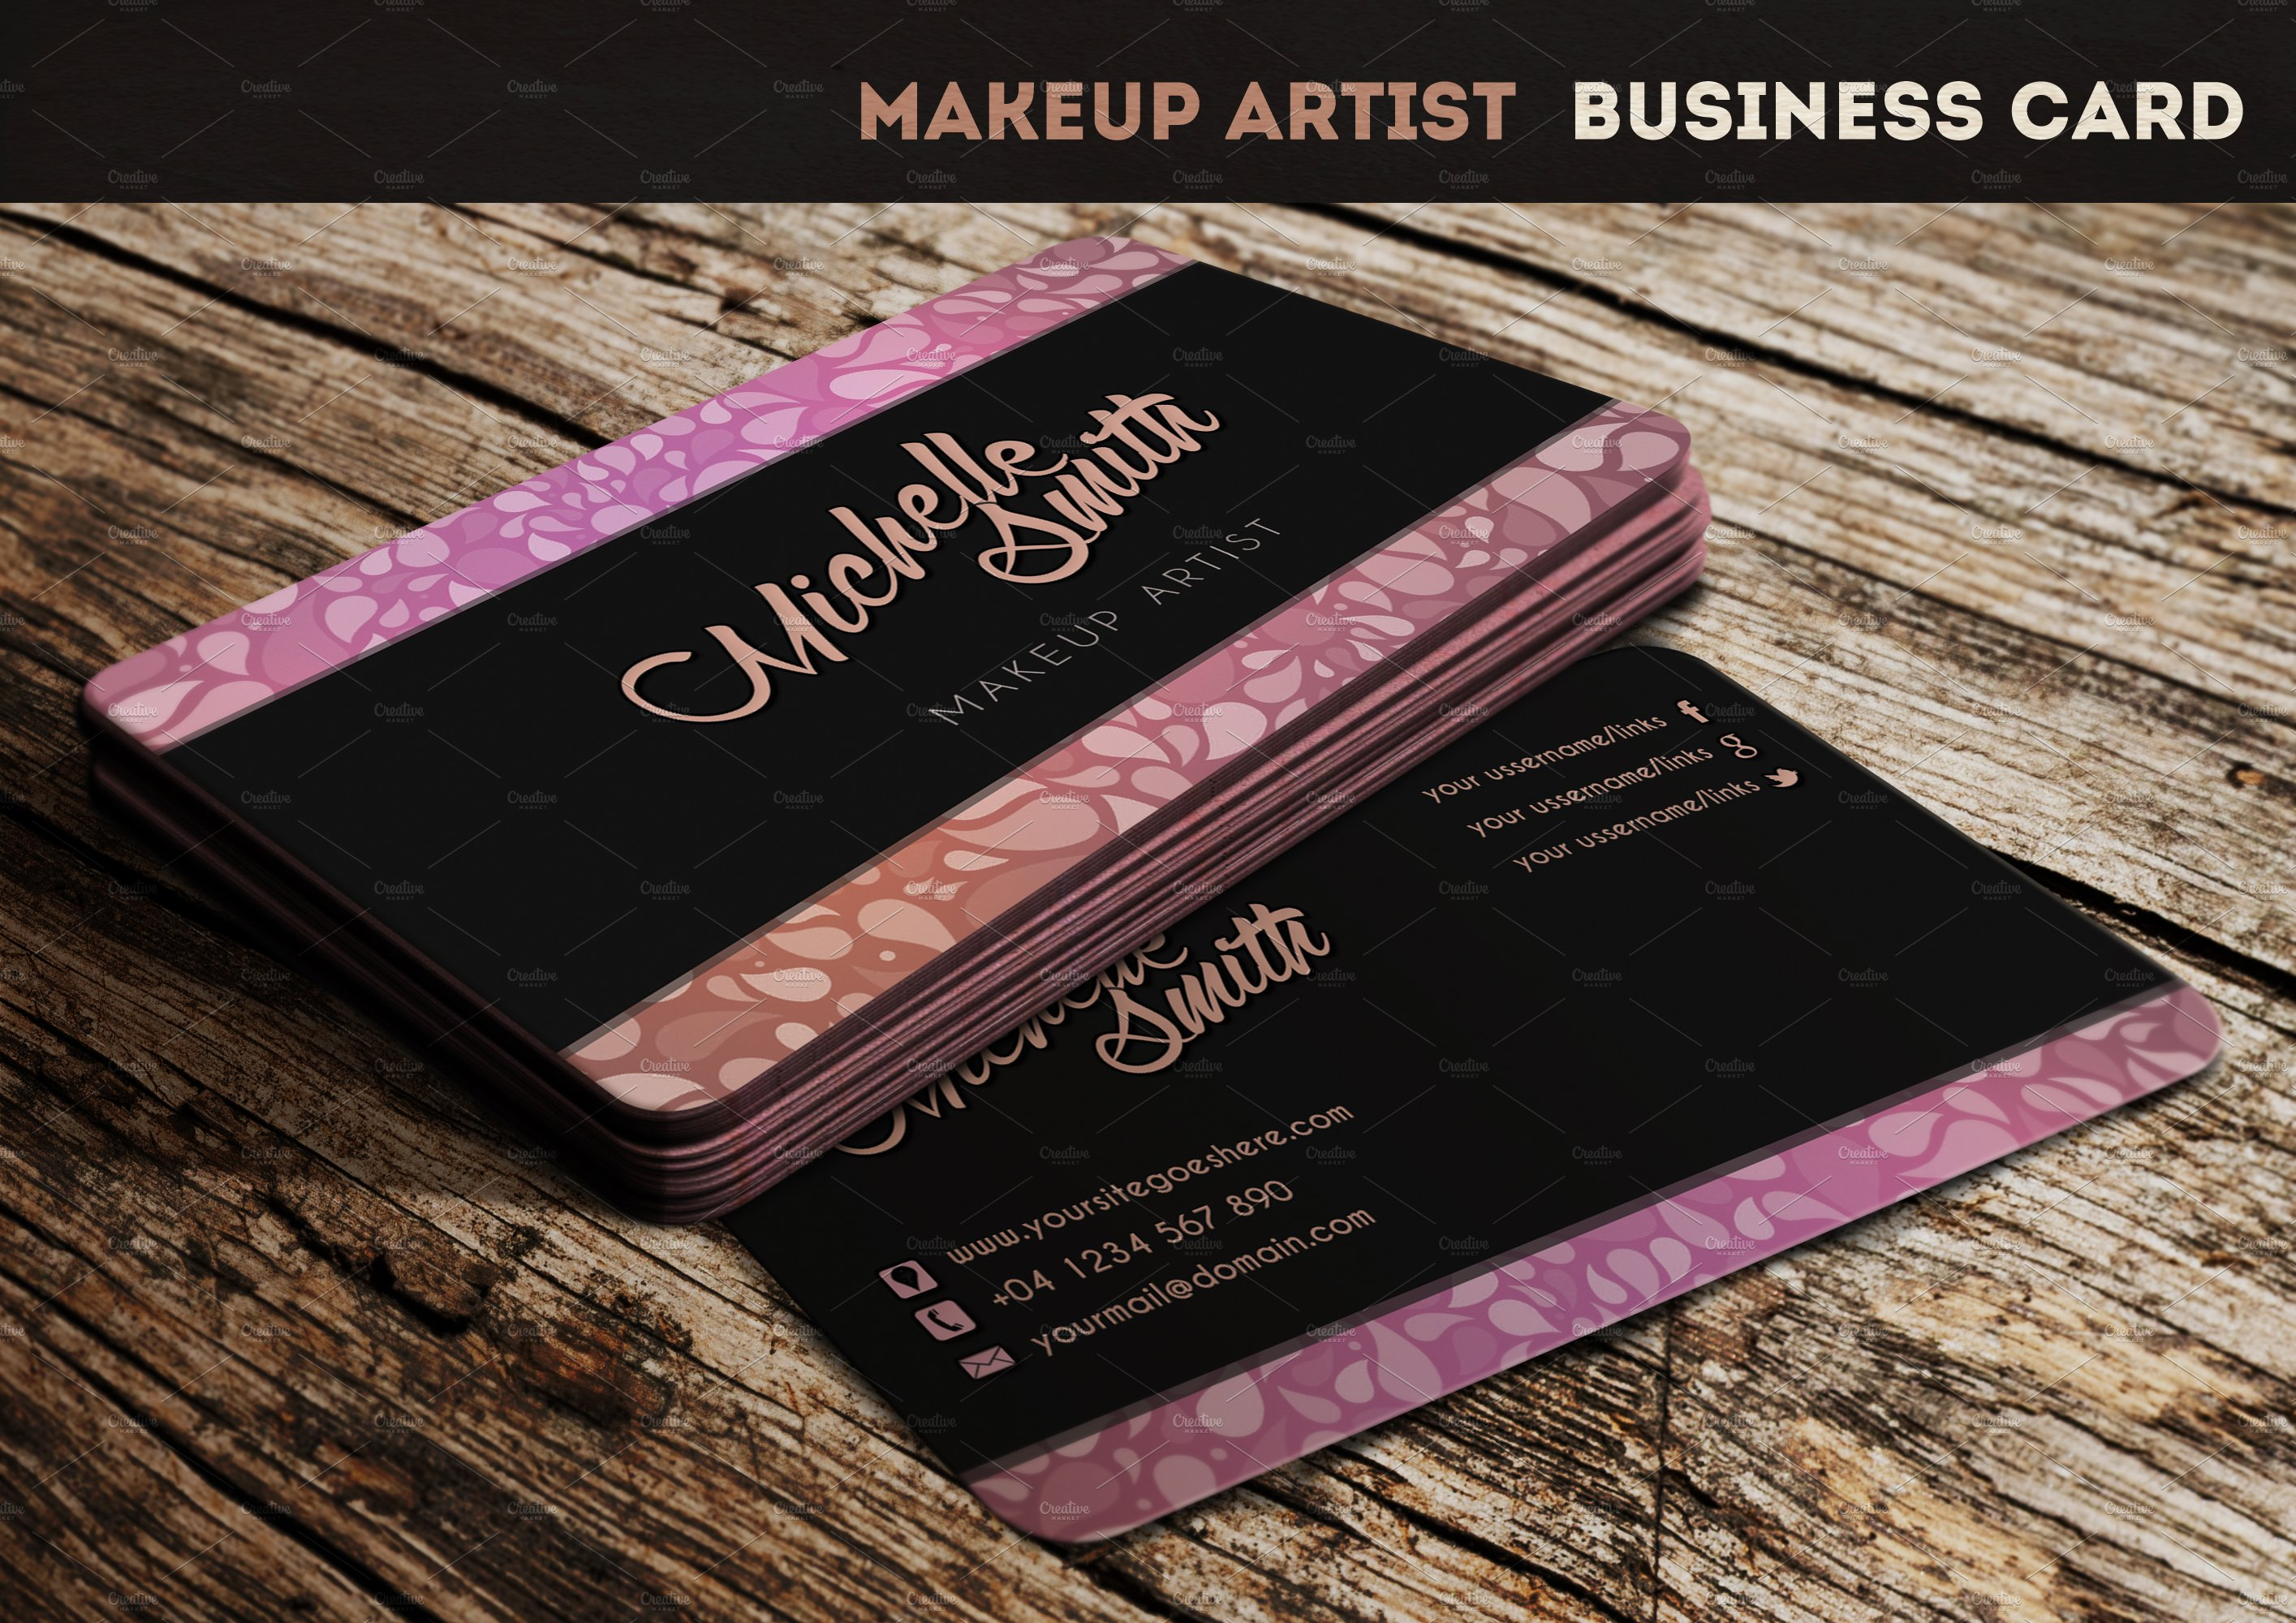 Makeup Artist Business Card ~ Business Card Templates ~ Creative Market